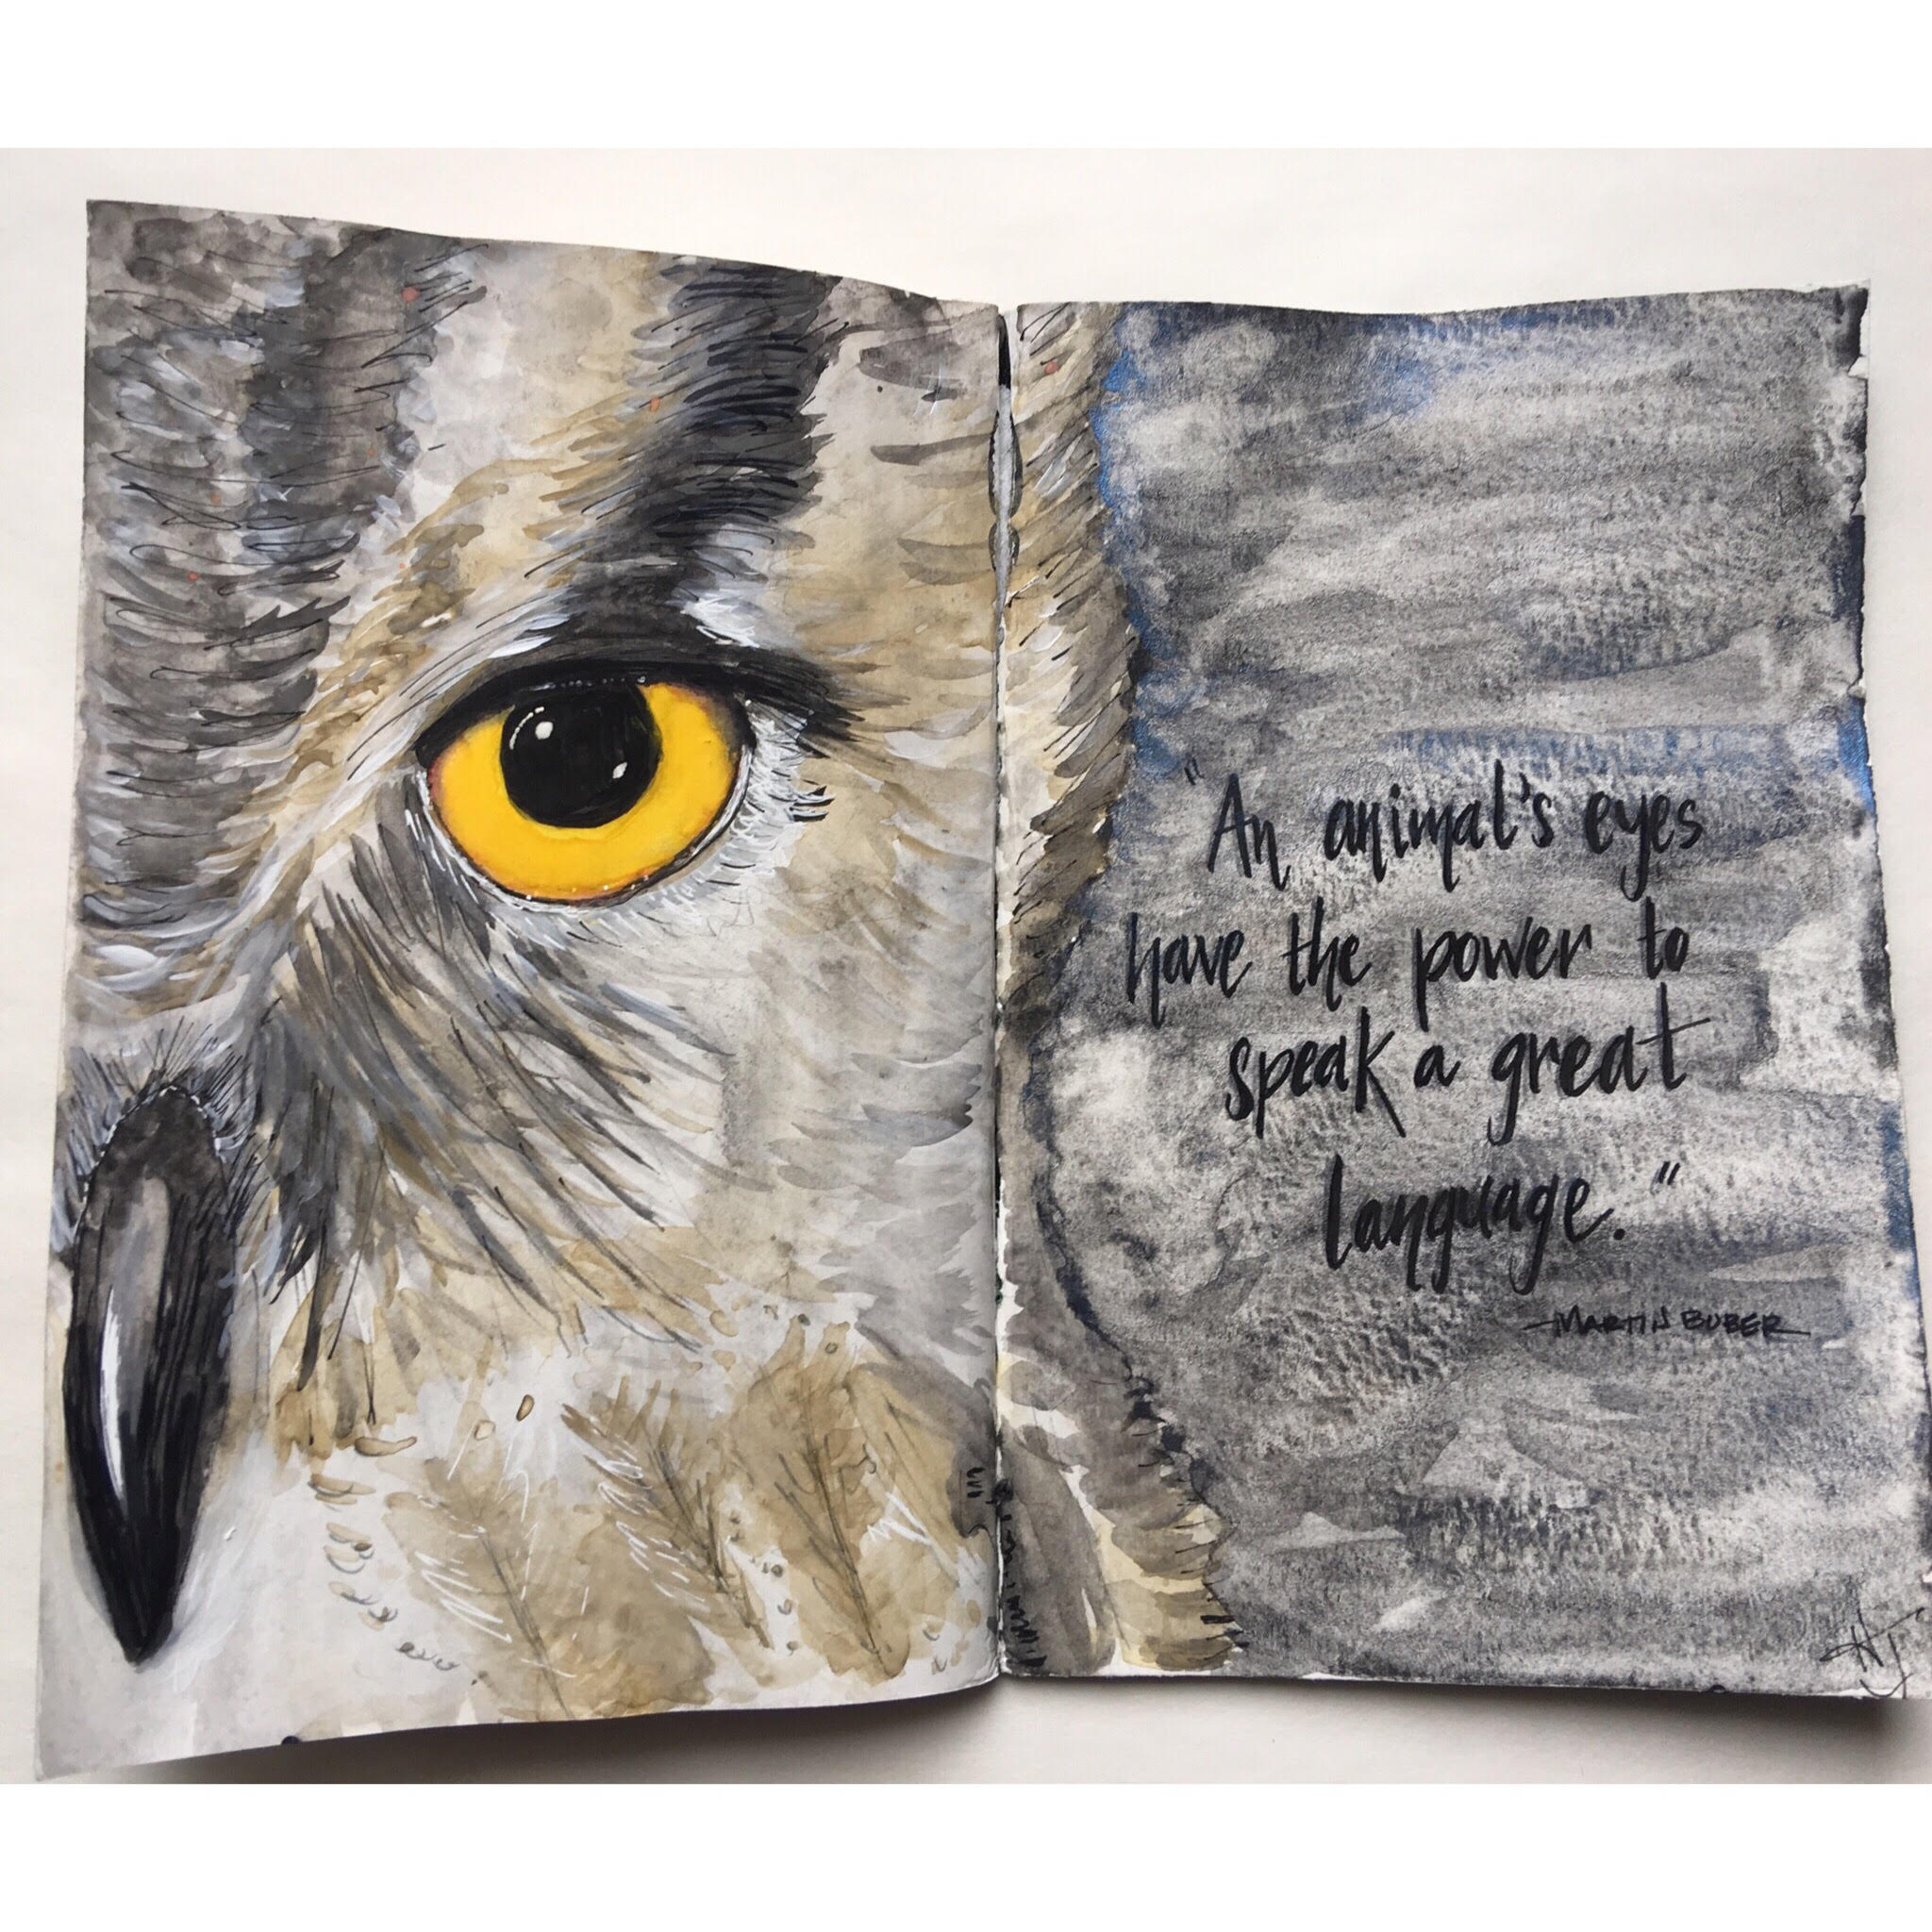 This is the latest owl I have created. I am struck by the difference between this owl and the one in the fourth image. Daily practice is important for growth. This owl has reinforced this lesson for me.